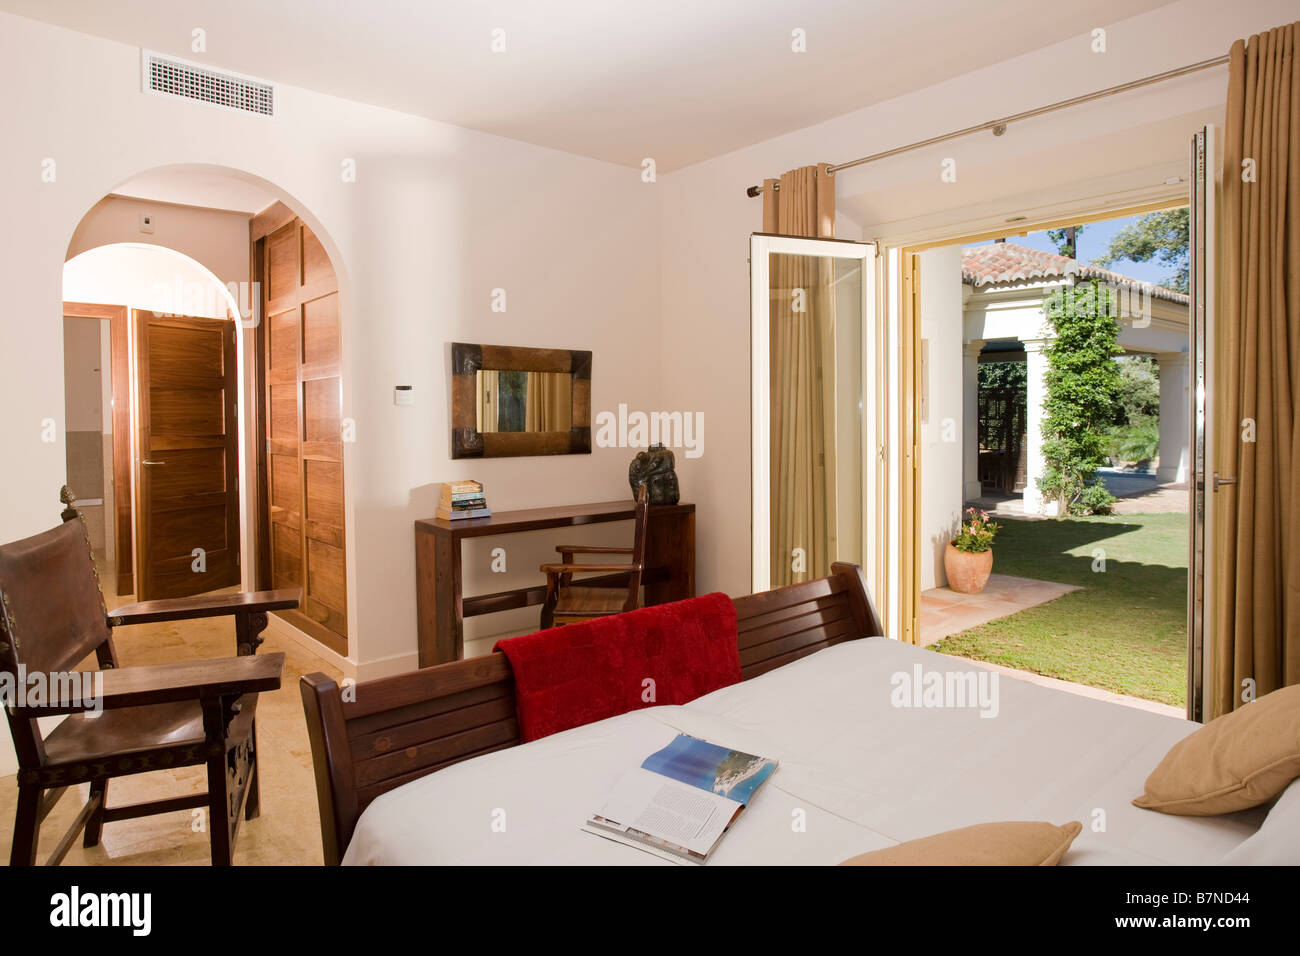 Spanish Bay Traditional Style Bedroom Simple Furniture In Modern Holiday Apartment With Patio